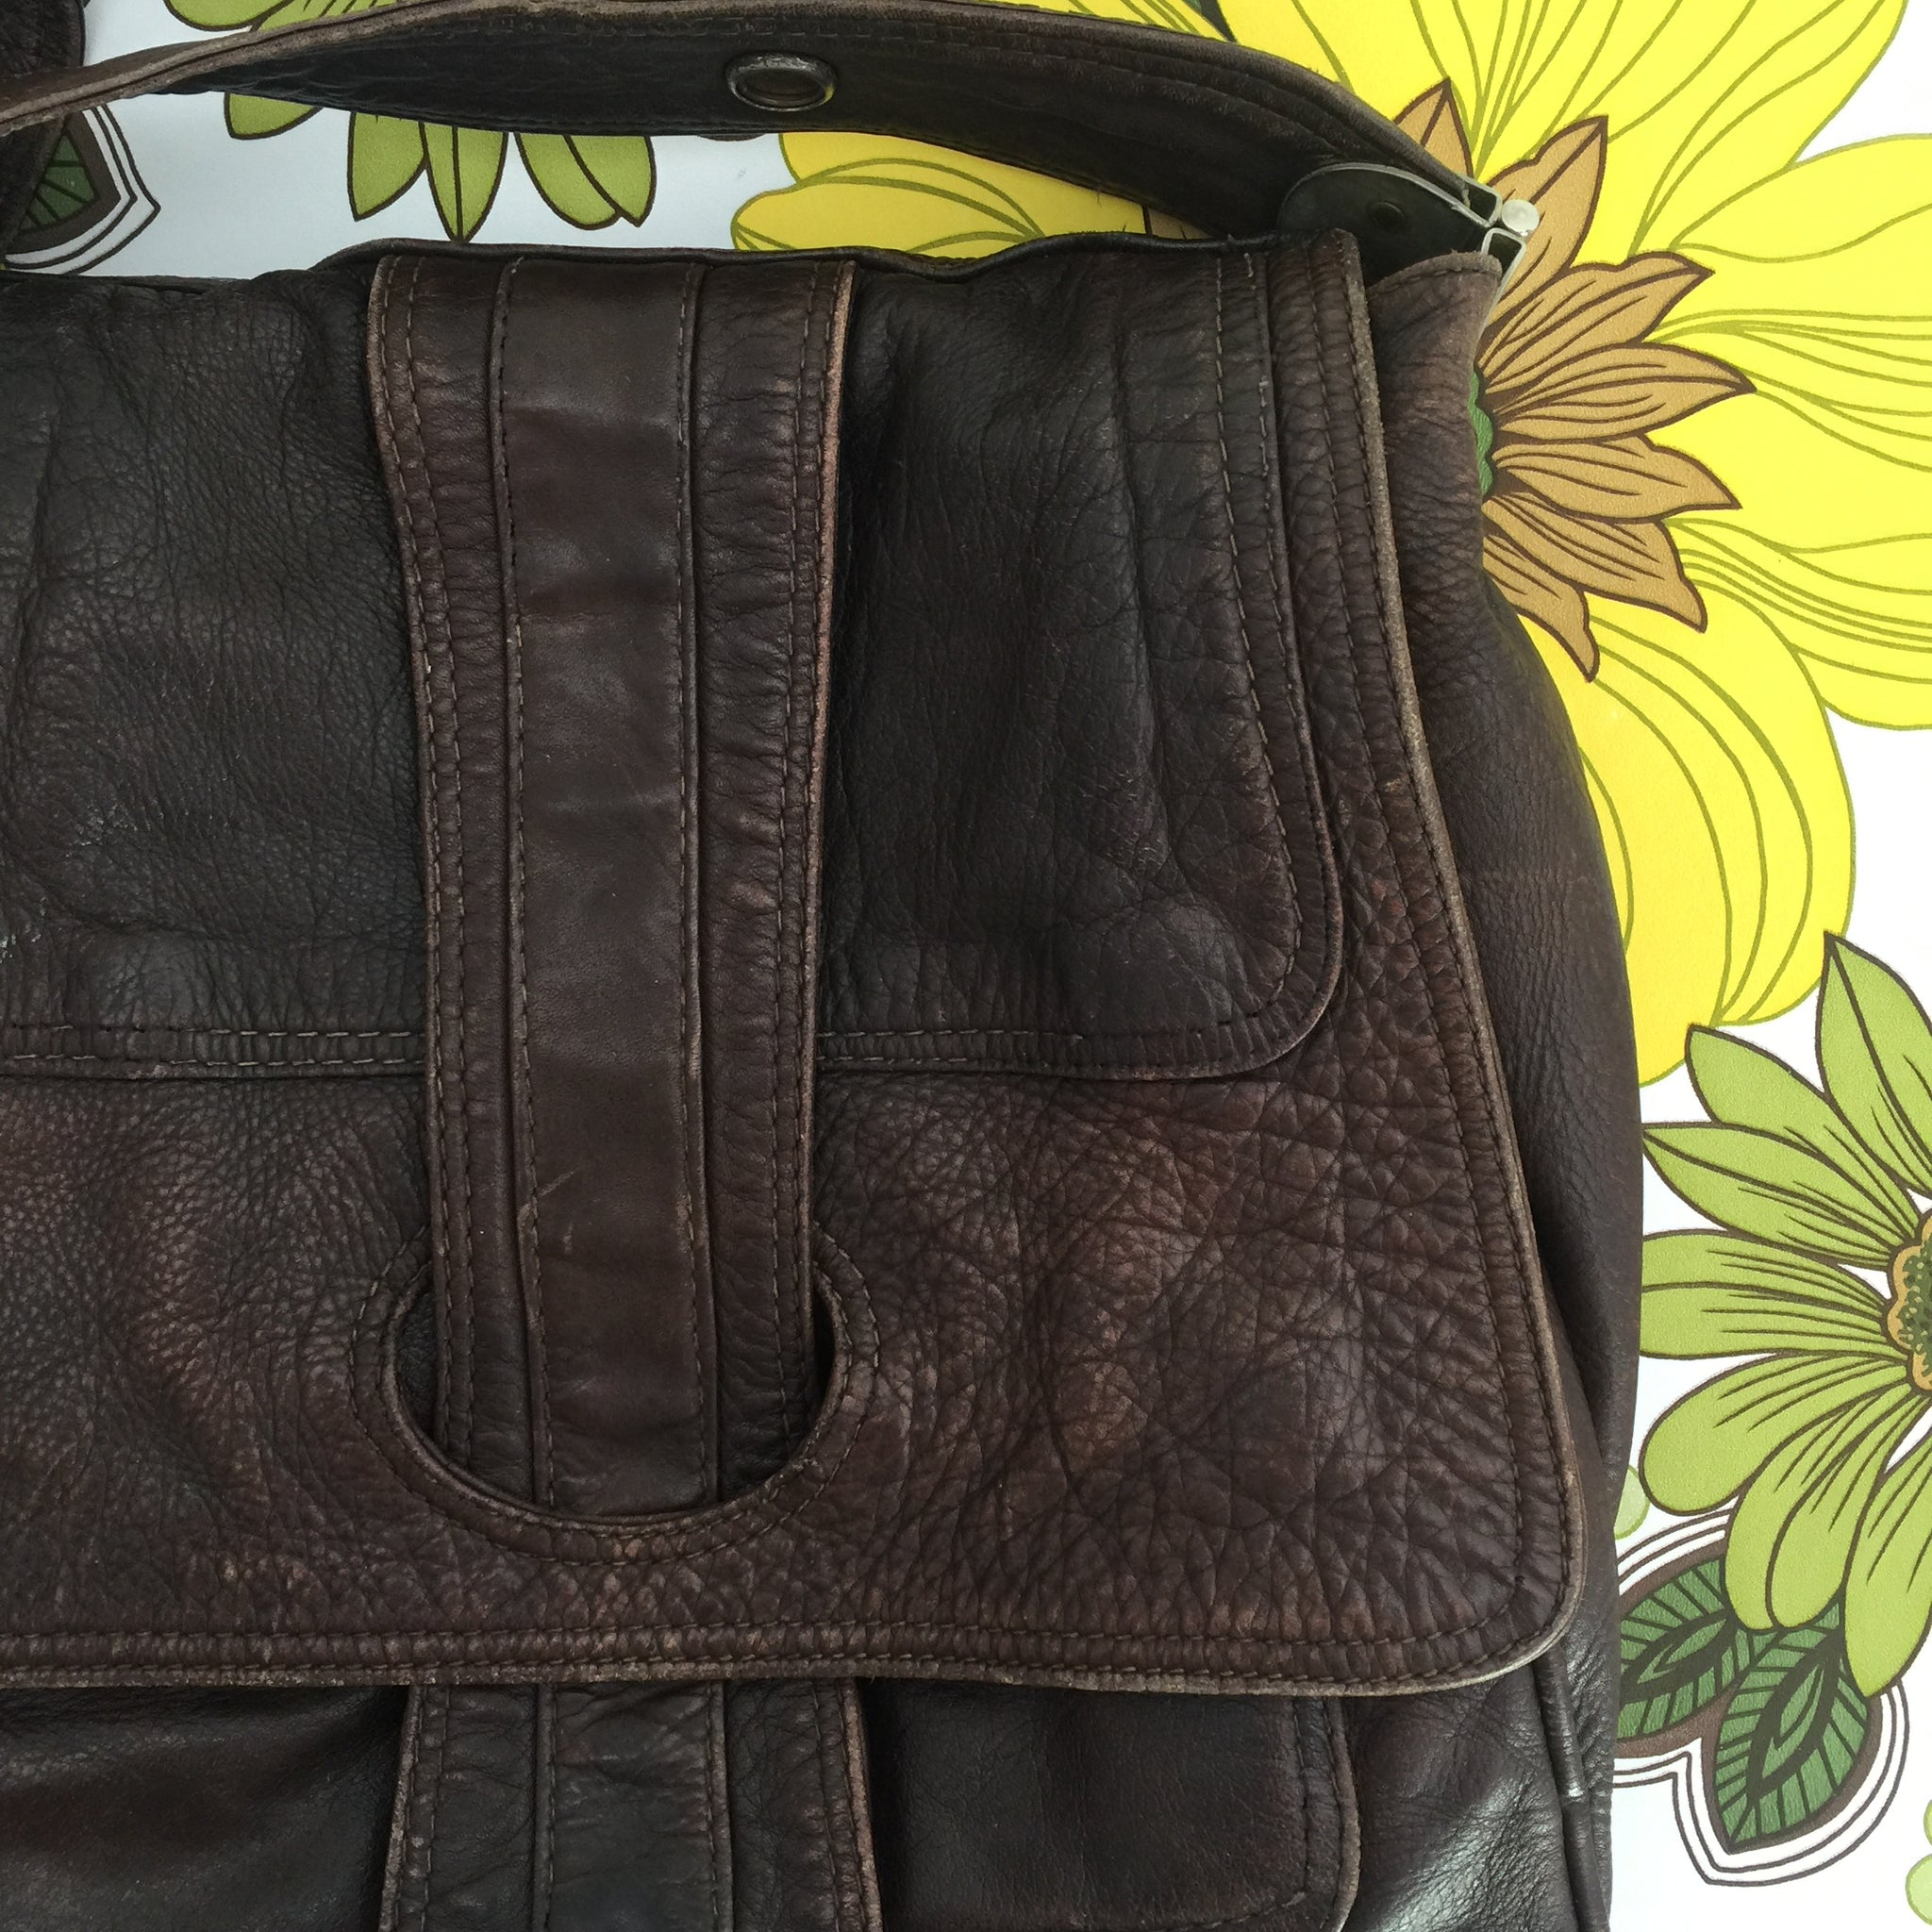 RUSTIC Leather Handbag COOL Bag Vintage Find